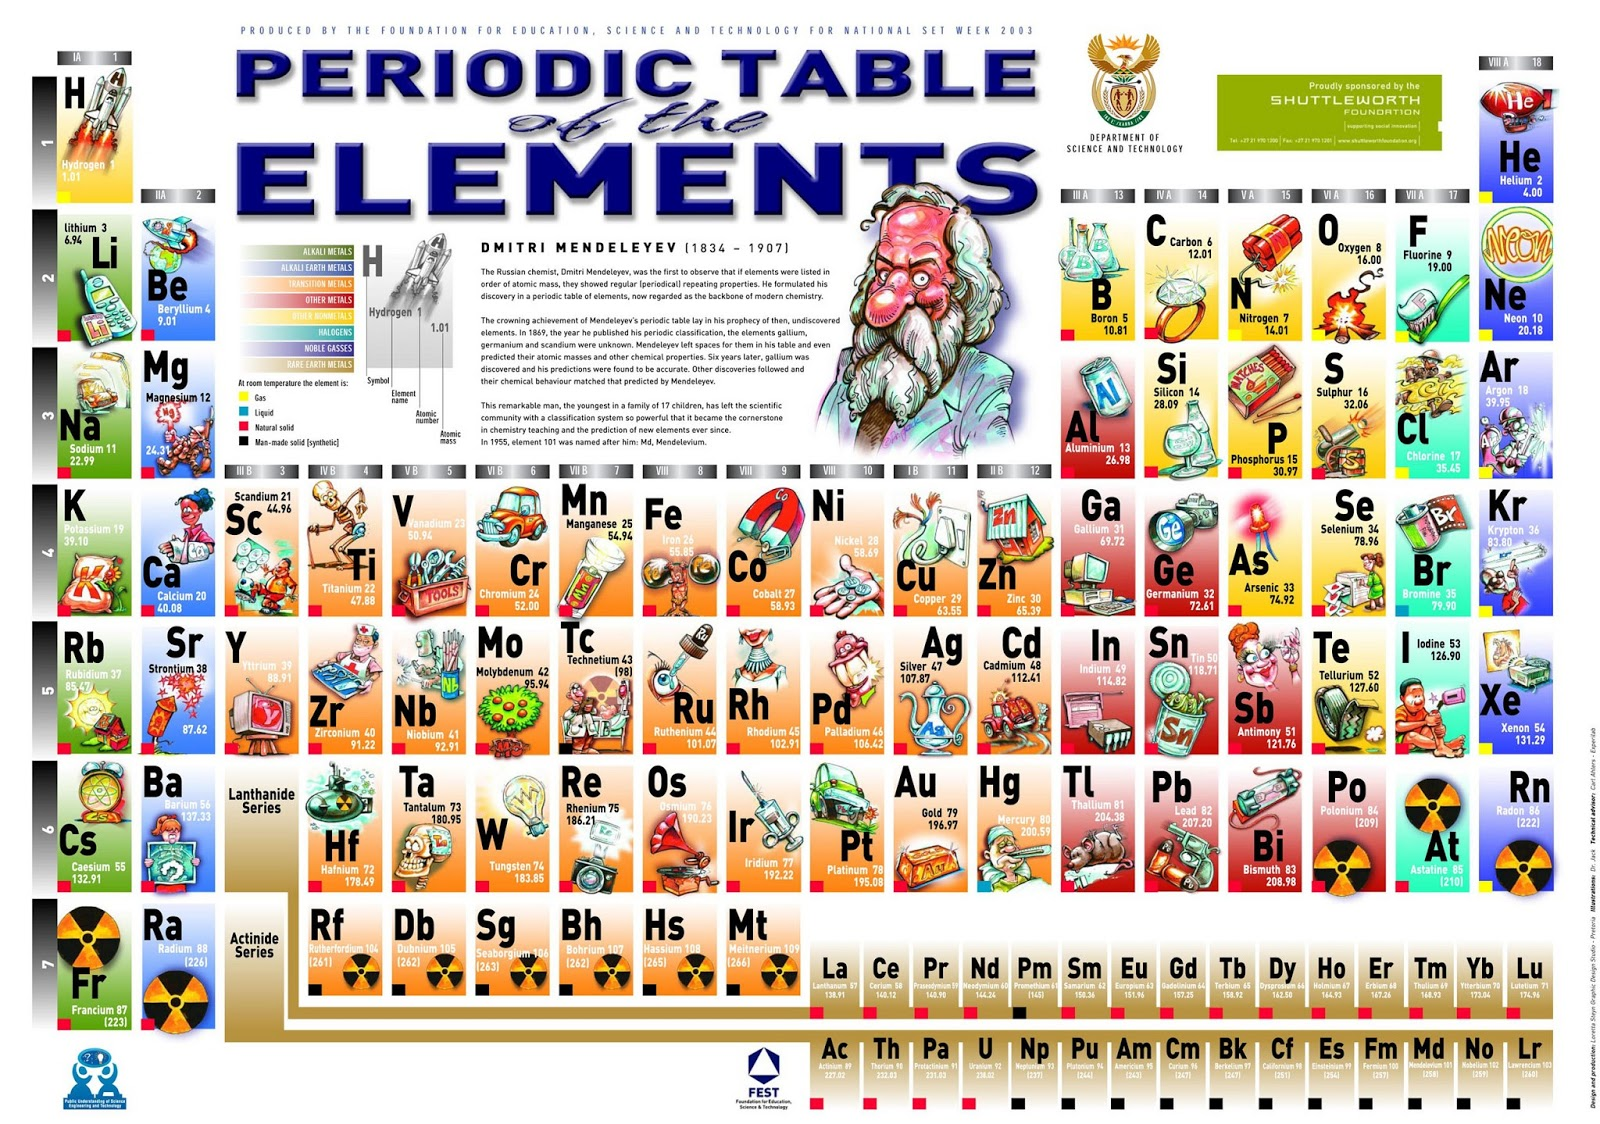 Periodic tables excellent pictorial represenation useful for 10 elements of the periodic table